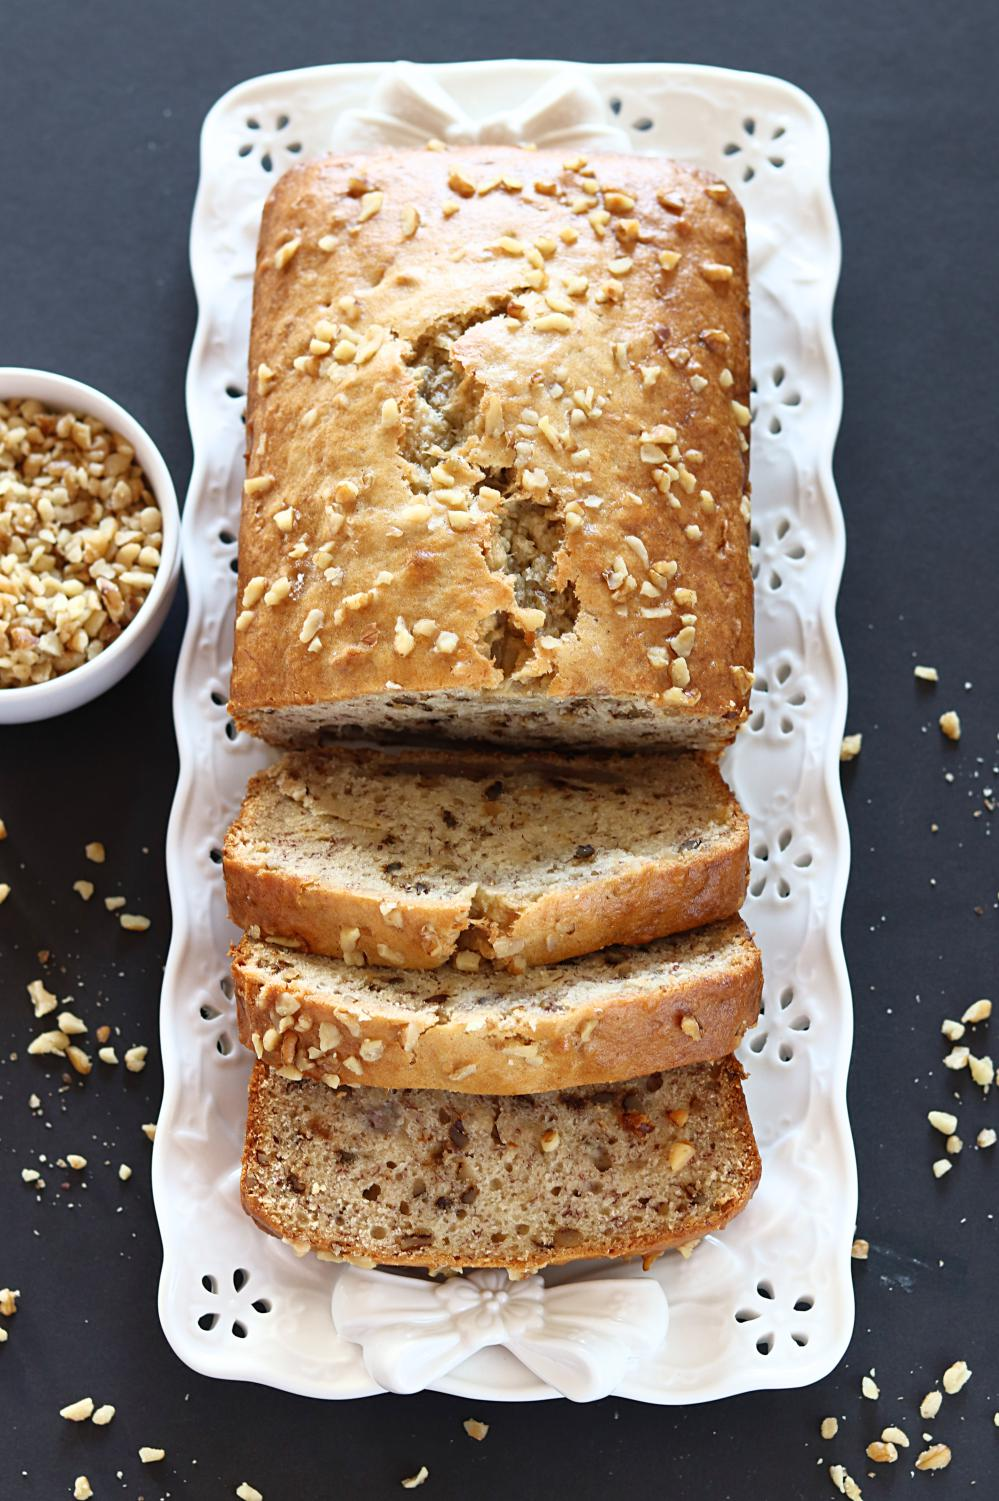 Vegan Banana Nut Bread - Ruchiskitchen